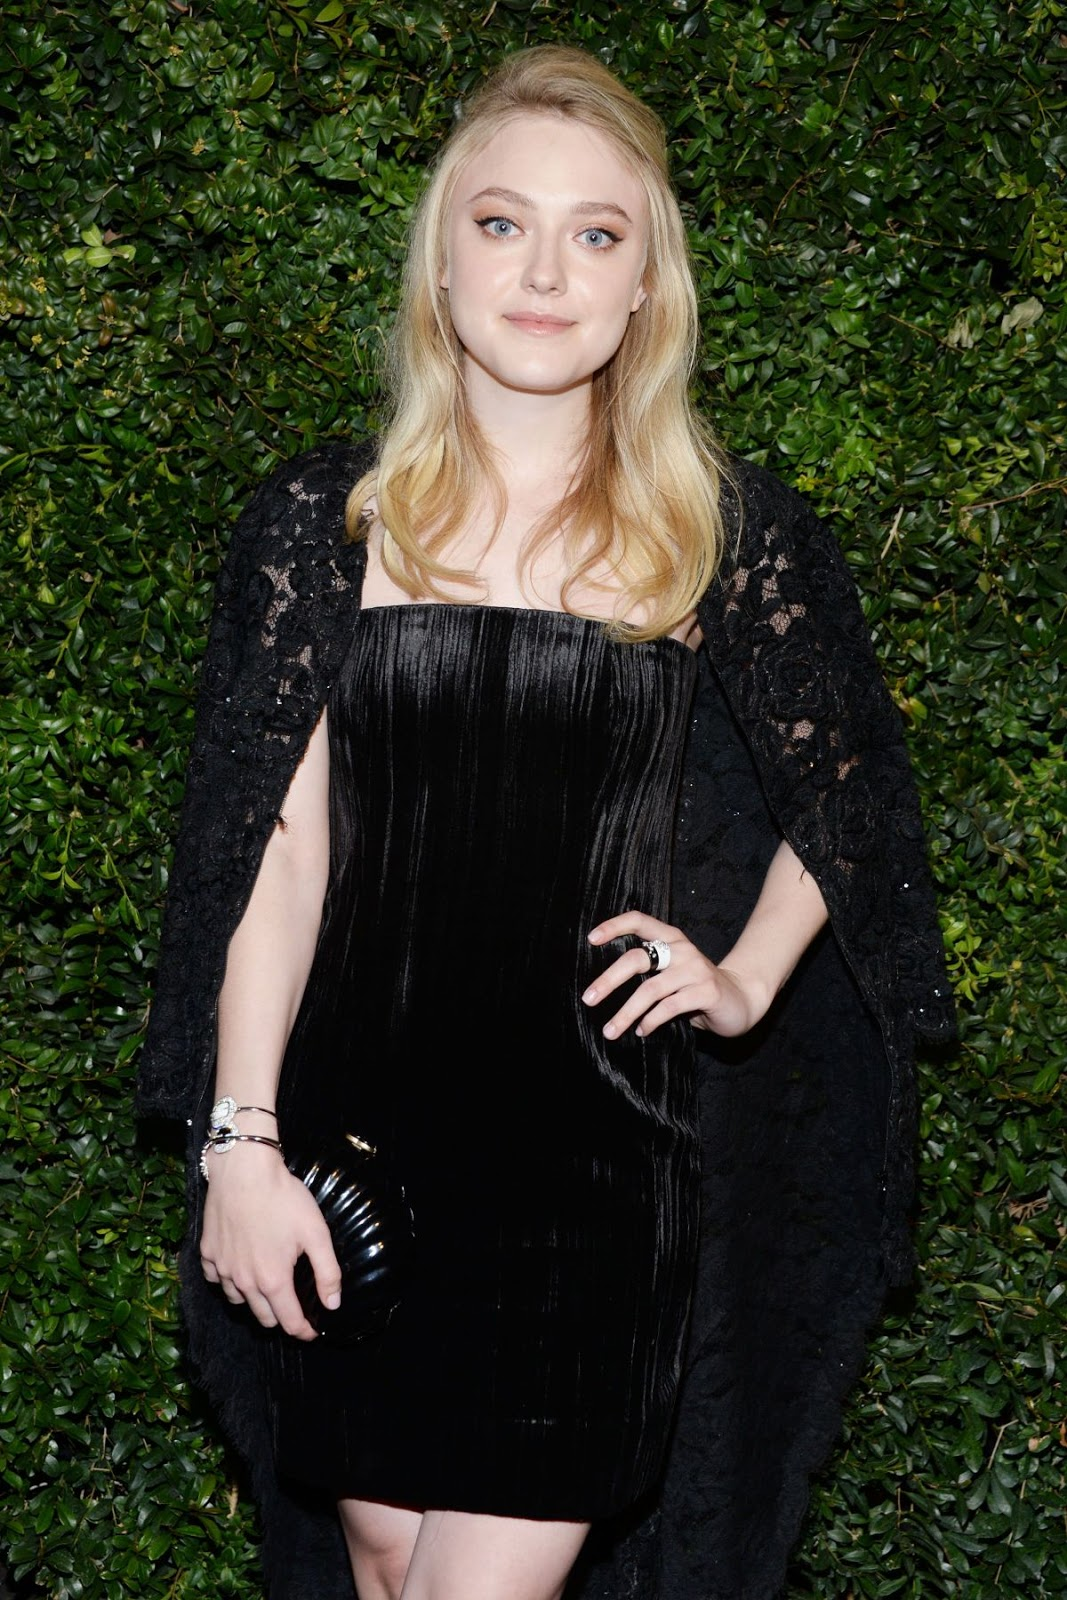 Brimstone actress Dakota Fanning at Chanel & Charles Finch Pre-Oscar Party 2016